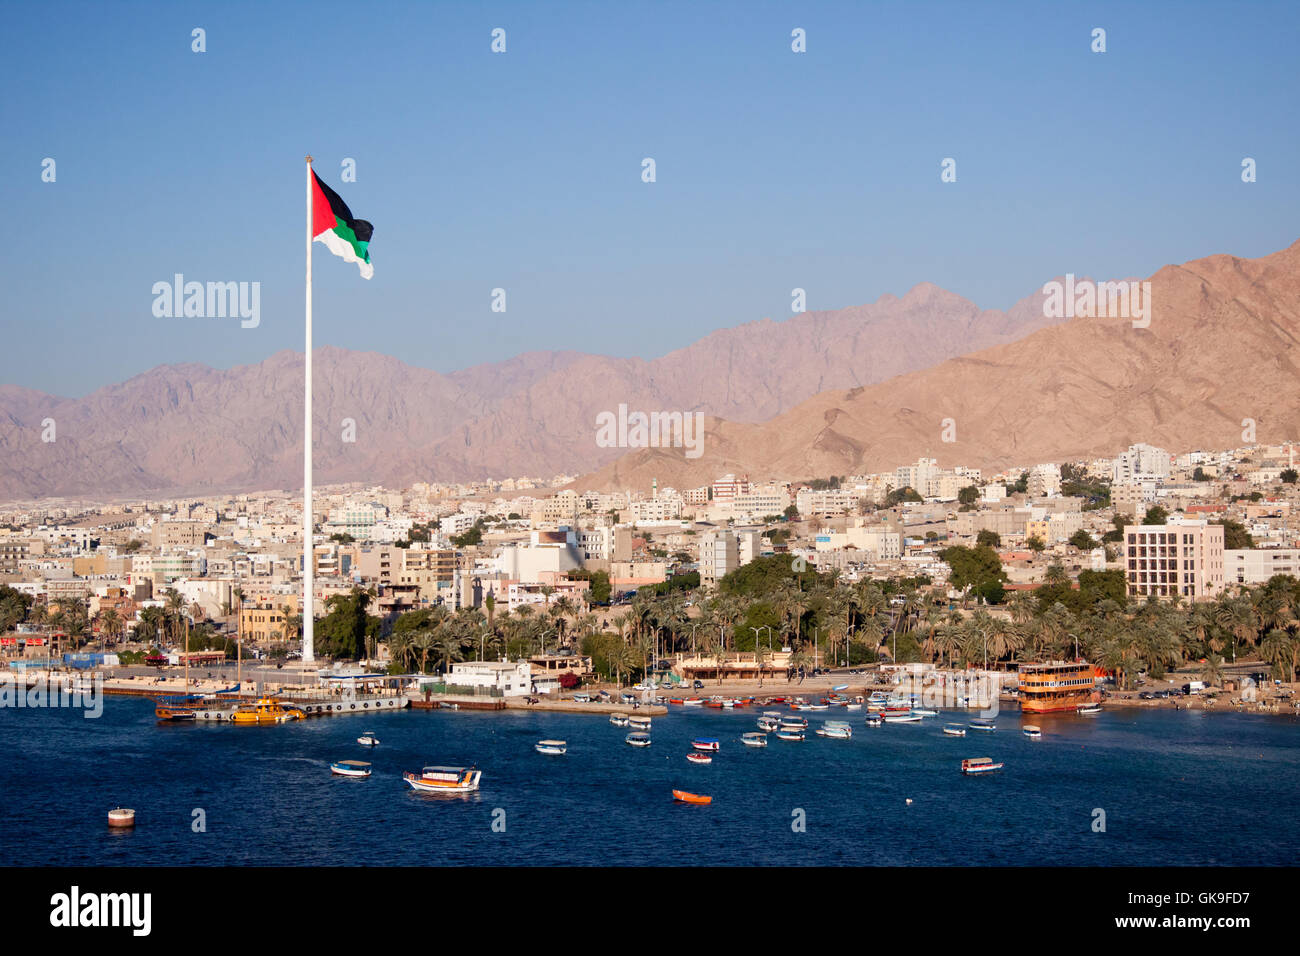 aqaba in jordan - Stock Image